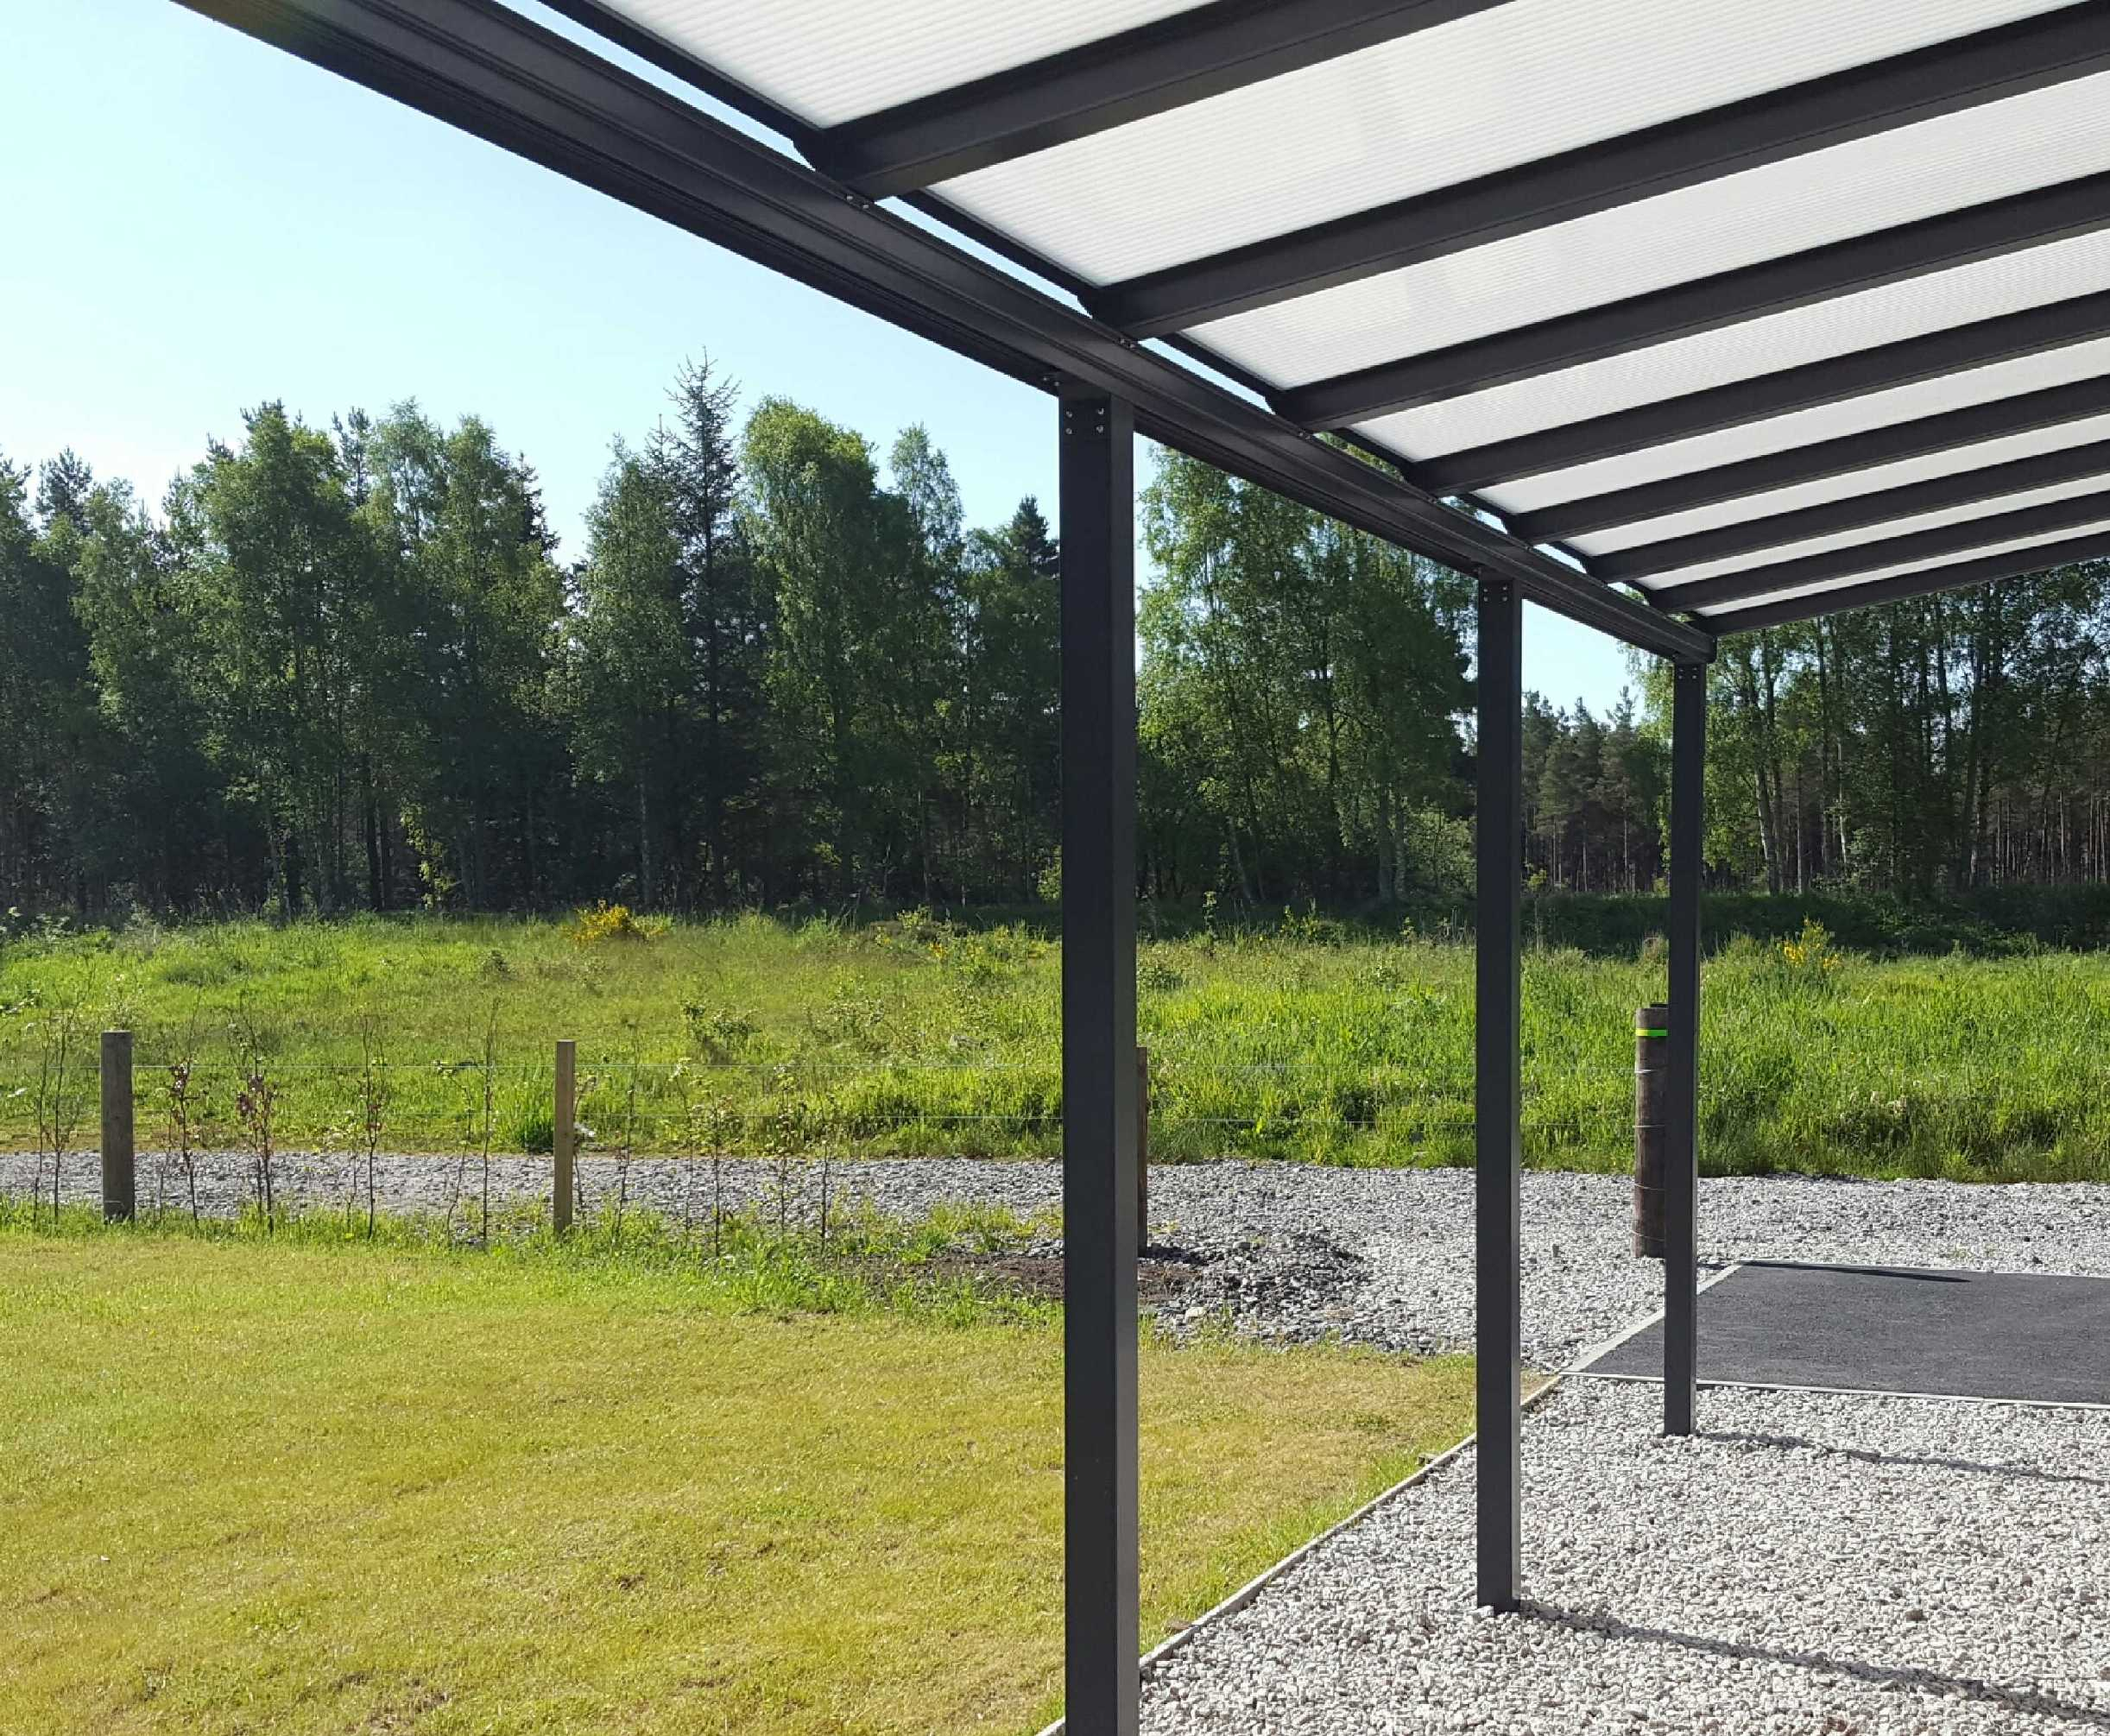 Omega Smart Lean-To Canopy, Anthracite Grey, 16mm Polycarbonate Glazing - 8.4m (W) x 3.5m (P), (4) Supporting Posts